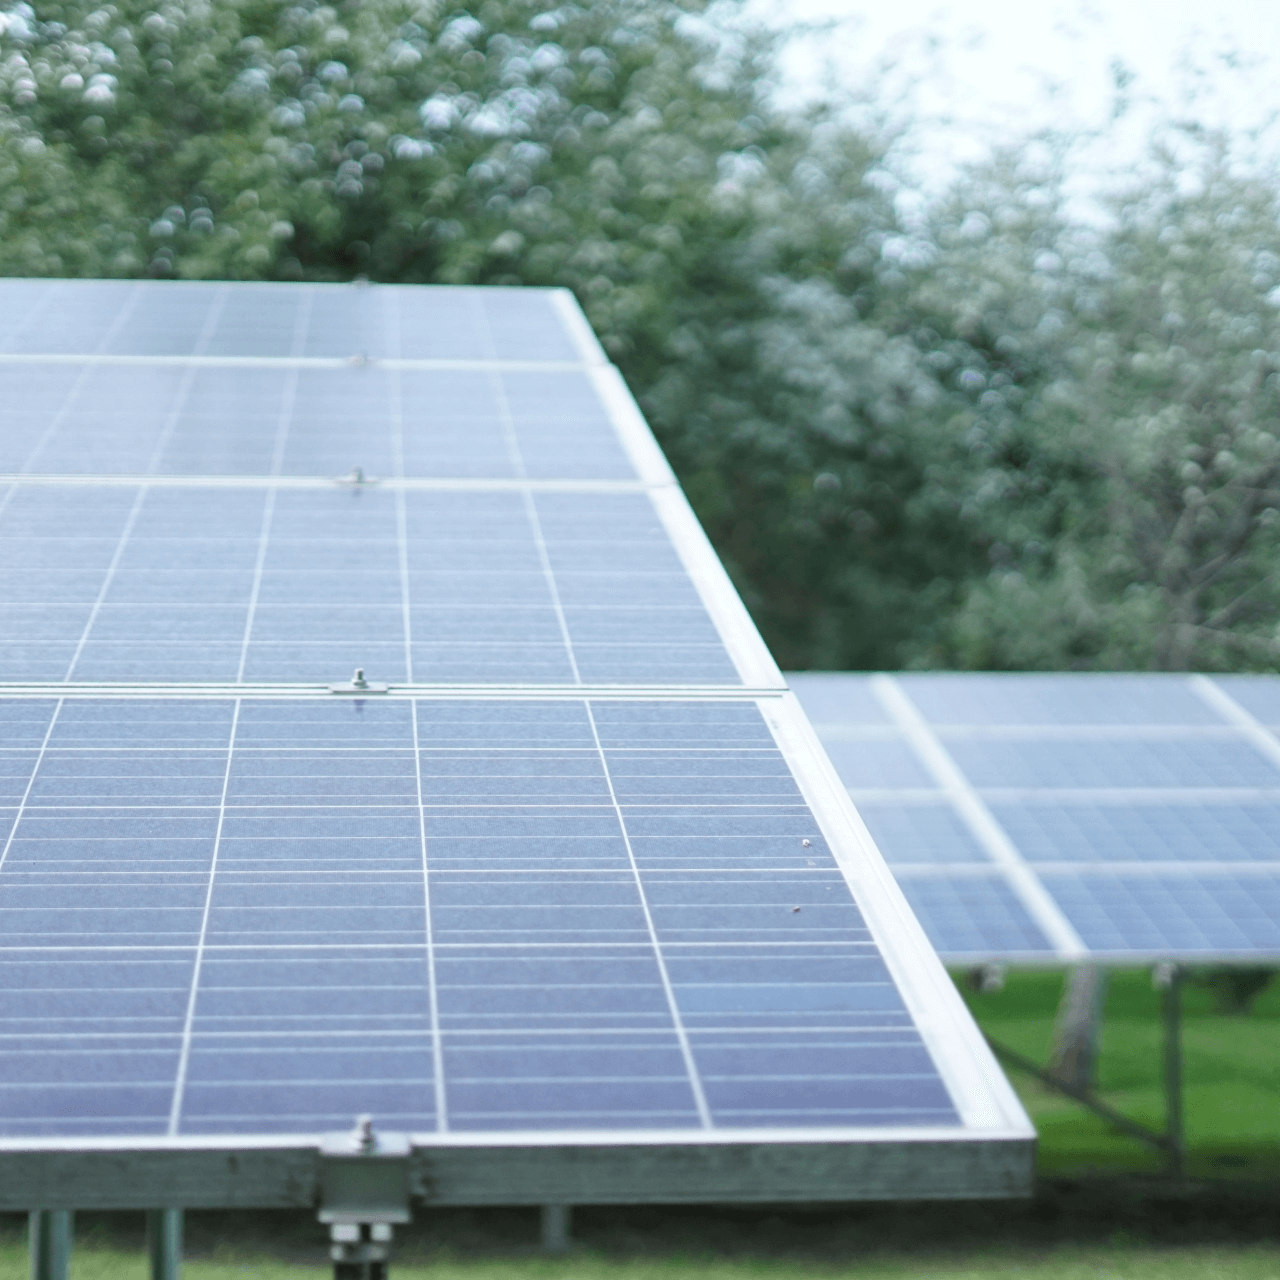 5 Facts About Solar Power You Need to Know